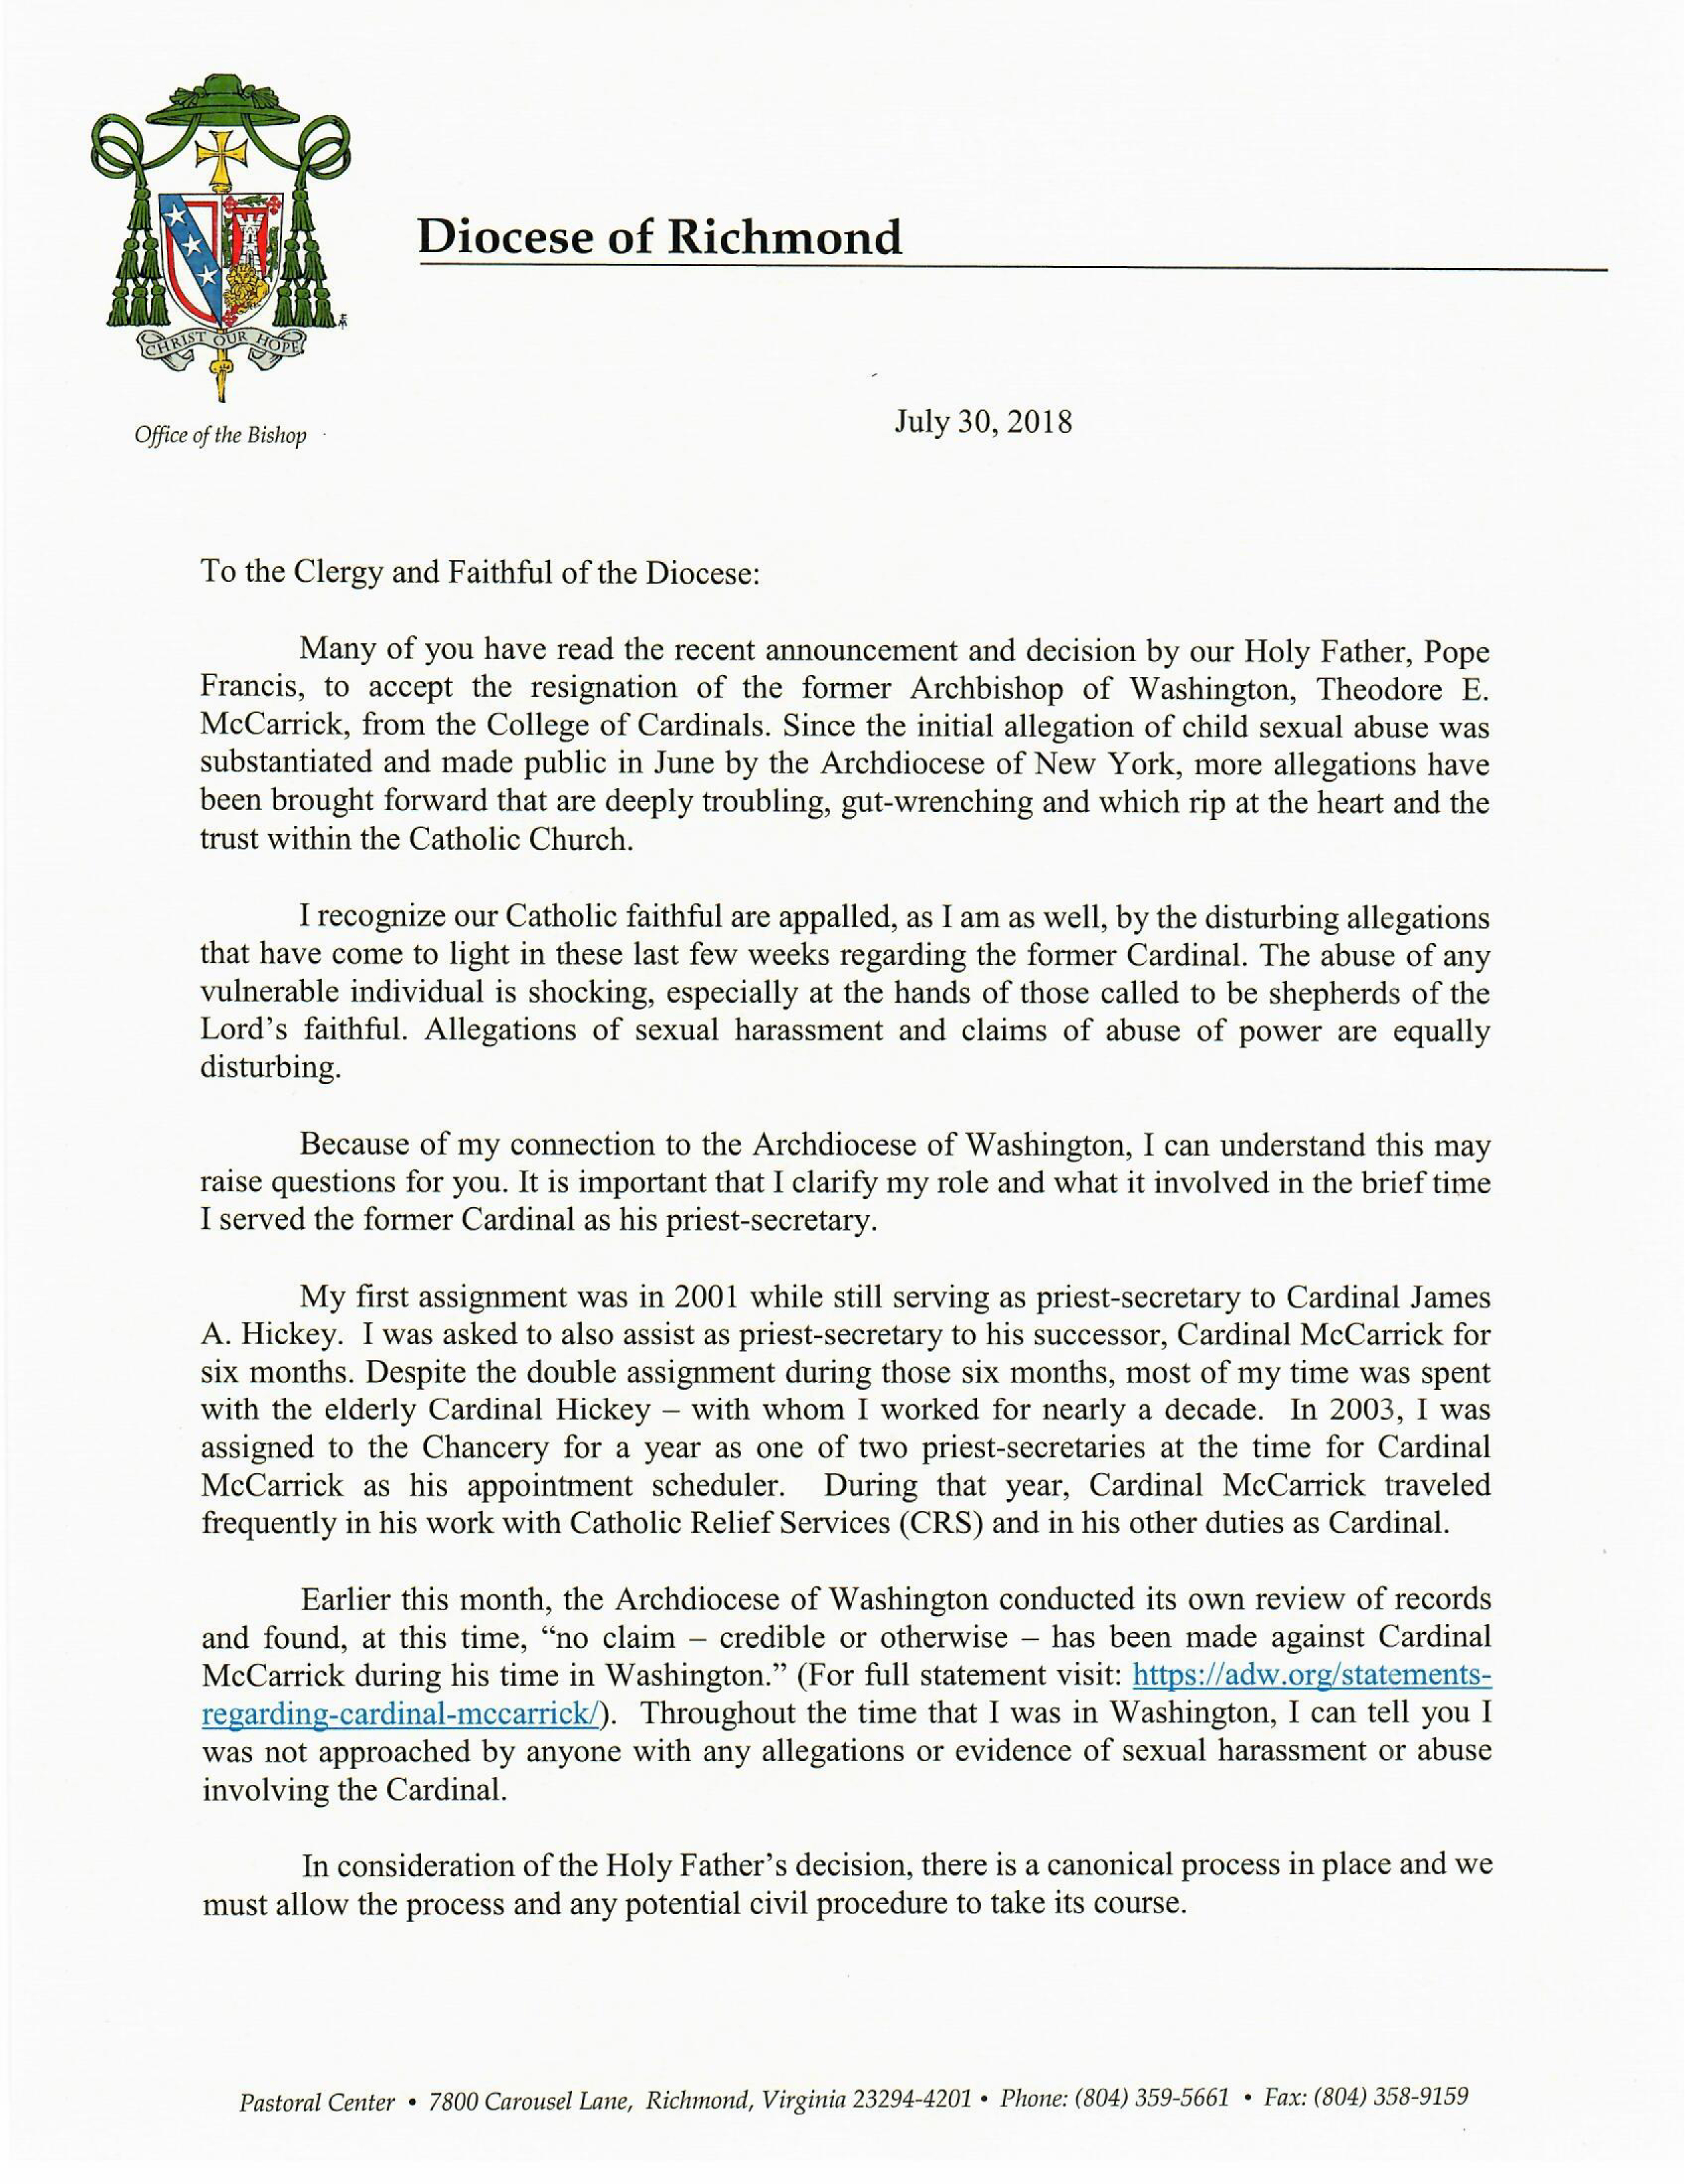 Letter to the Clergy and Faithful of the Diocese